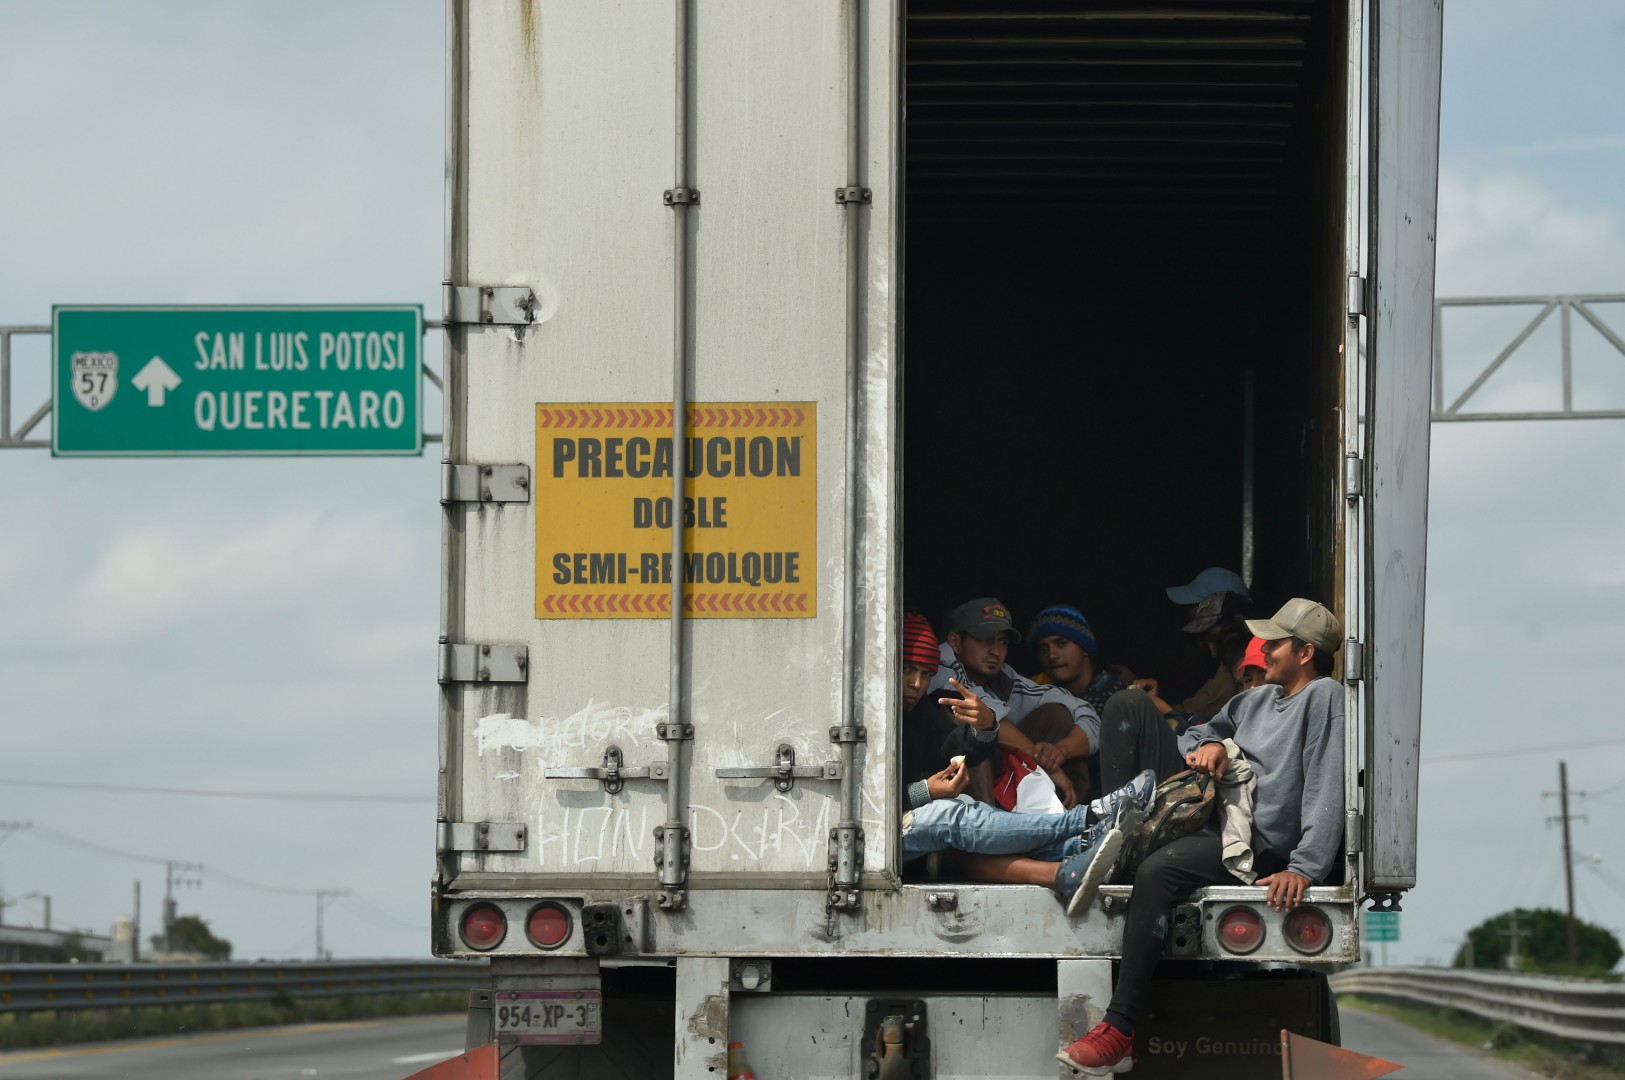 Migrants from poor Central American countries -mostly Hondurans- moving towards the United States in hopes of a better life or to escape violence, get a ride on the bed of a truck as they head to Queretaro after leaving the Mexican capital to continue their trek north, on November 10, 2018. - The United States embarked Friday on a policy of automatically rejecting asylum claims of people who cross the Mexican border illegally in a bid to deter Central American migrants and force Mexico to handle them. (Photo by Alfredo ESTRELLA / AFP)